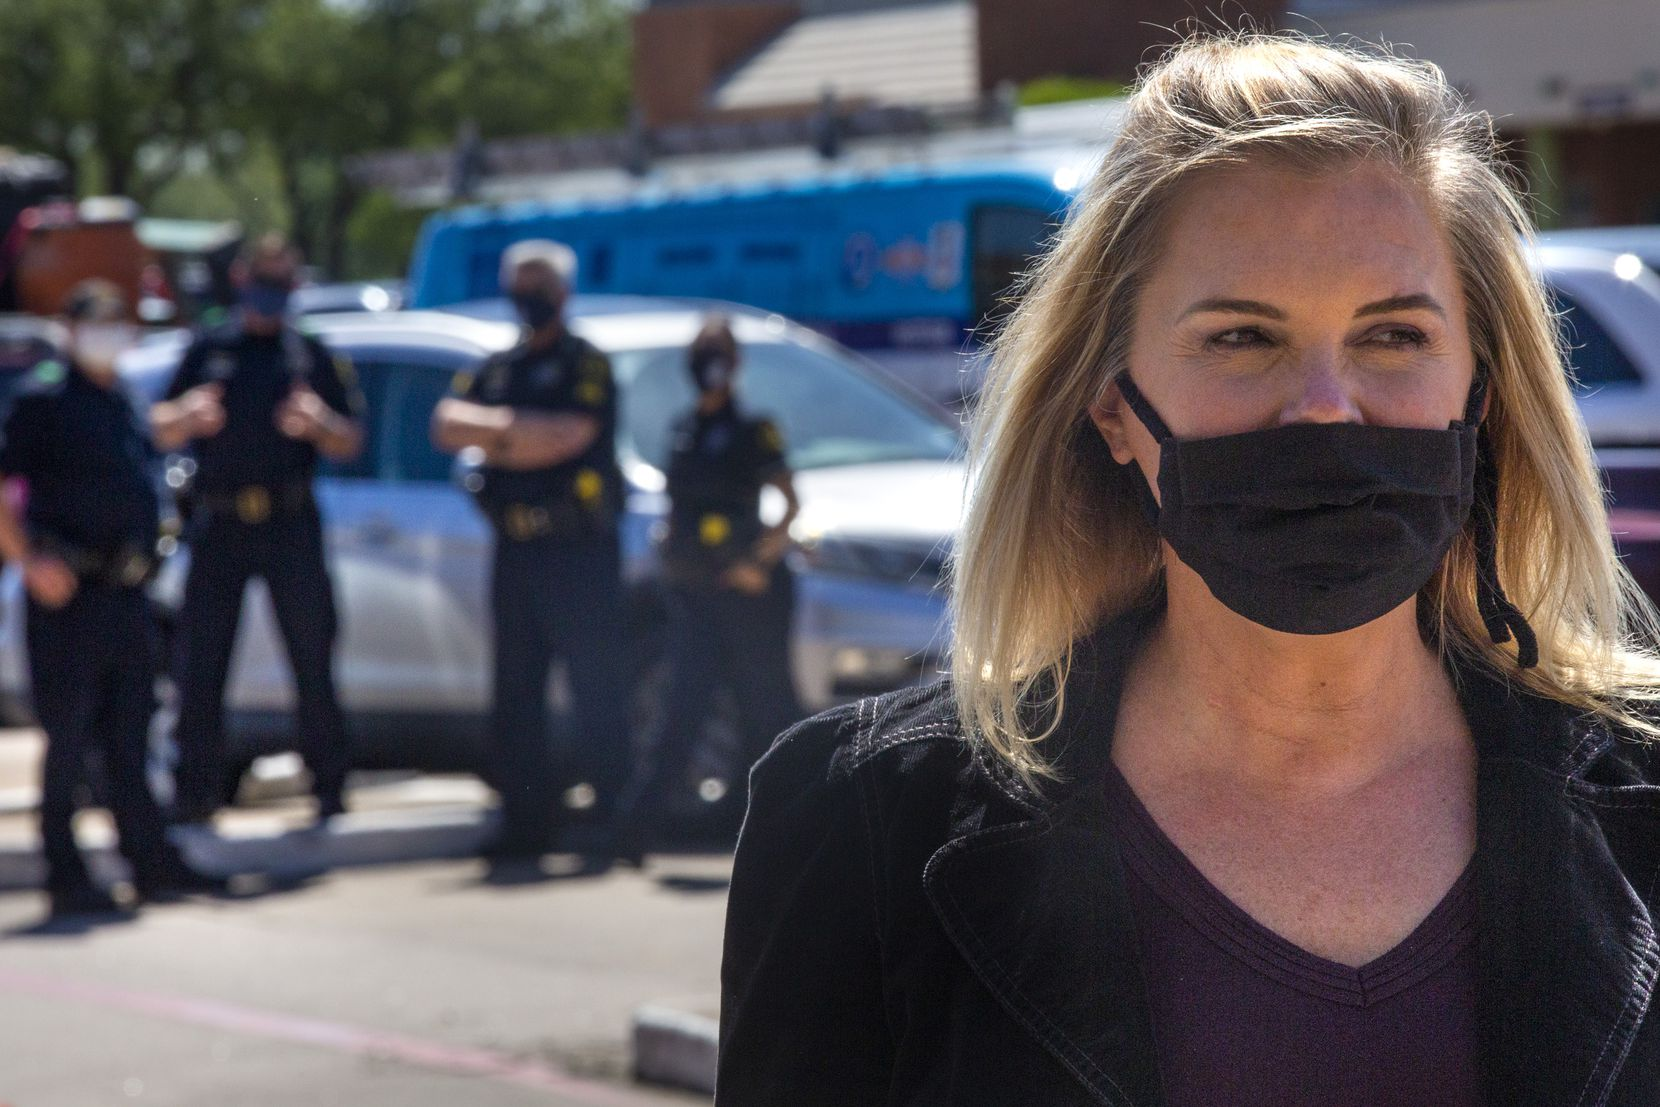 With Dallas officers standing by, Shelley Luther speaks with supporters in the parking lot outside of her business, Salon a la Mode, in Far North Dallas on April 29.